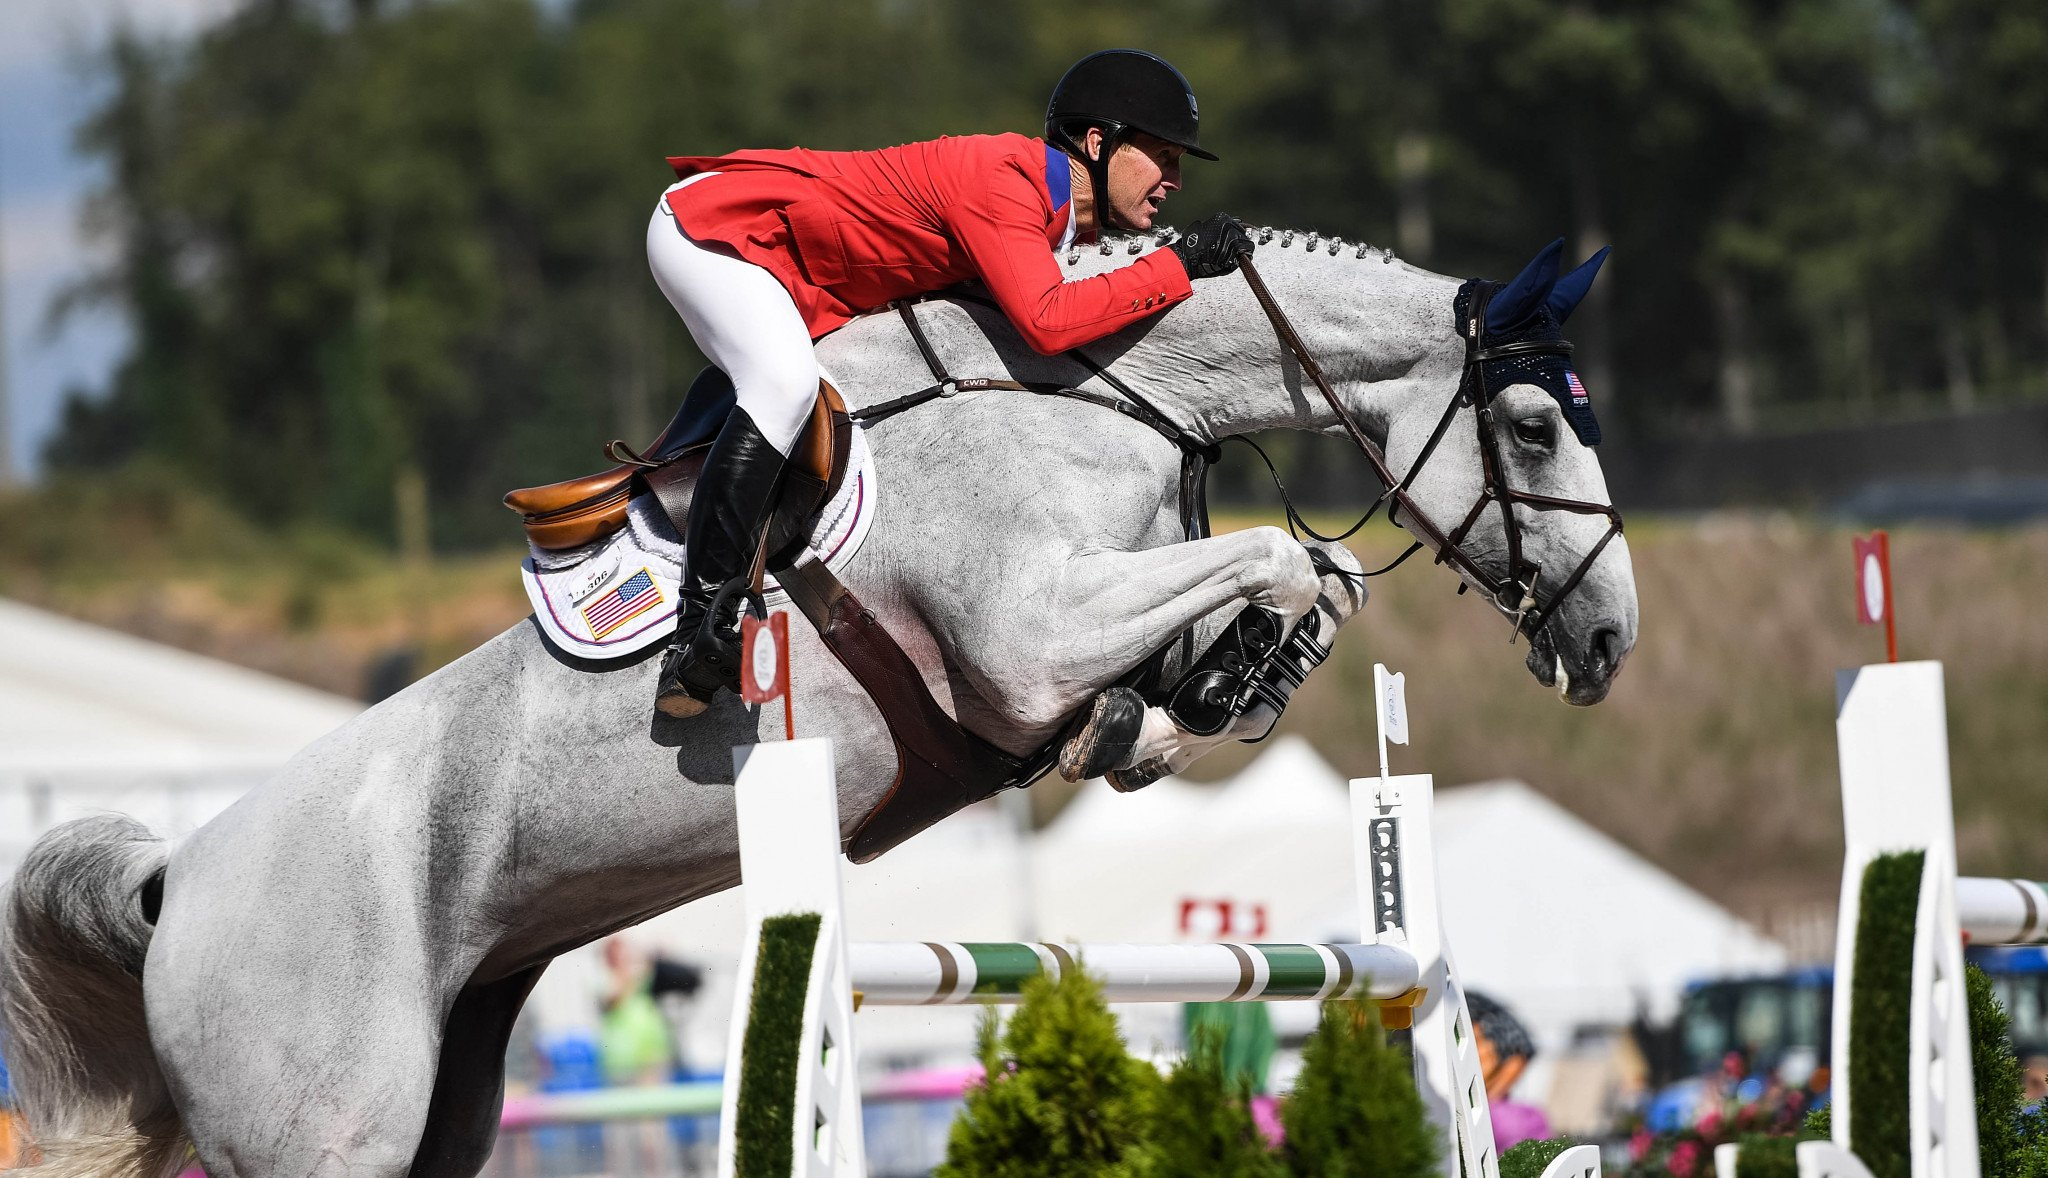 US hosts move up to challenge Switzerland in team jumping at FEI World Equestrian Games